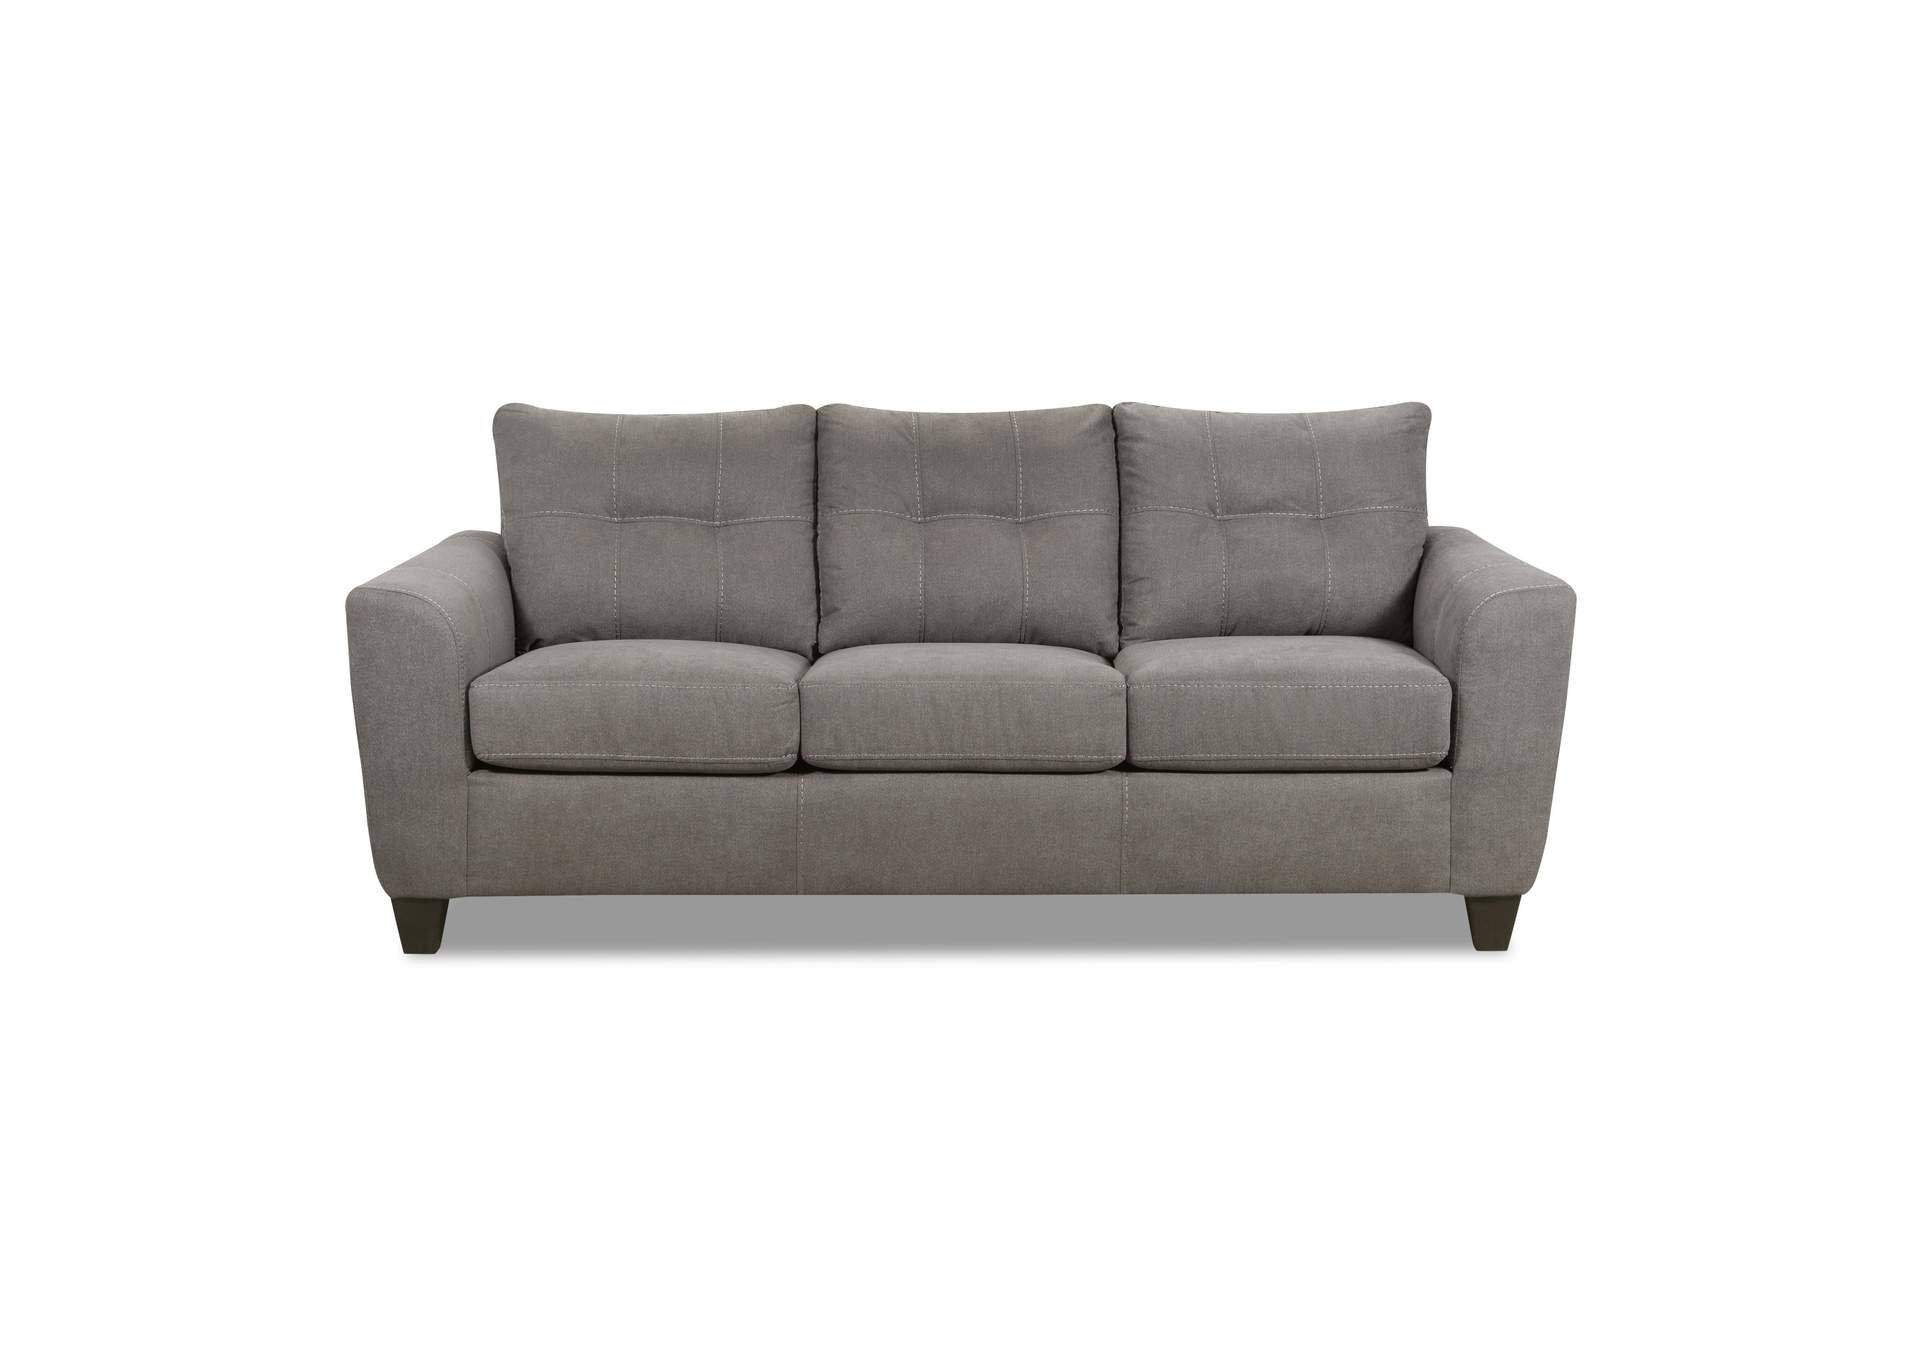 2086 Farrar Queen Sleeper Sofa